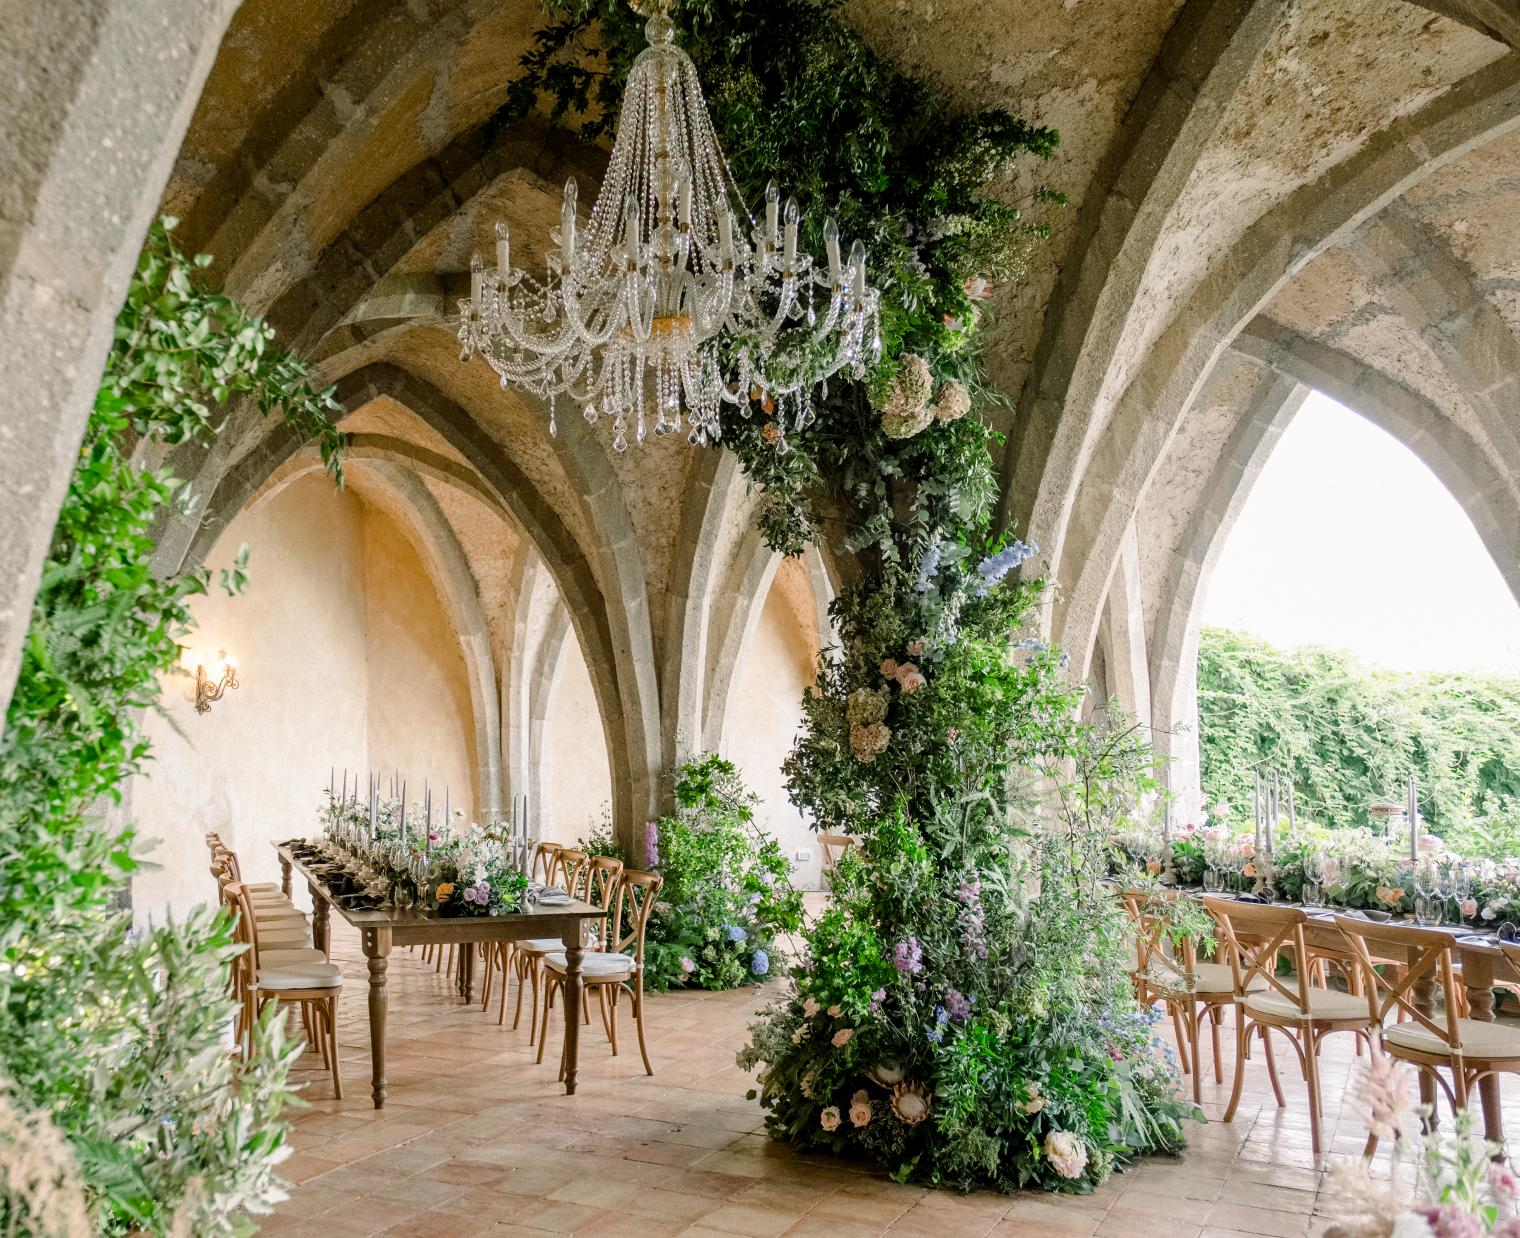 28 Of The Best Wedding Venues Across The World According To These